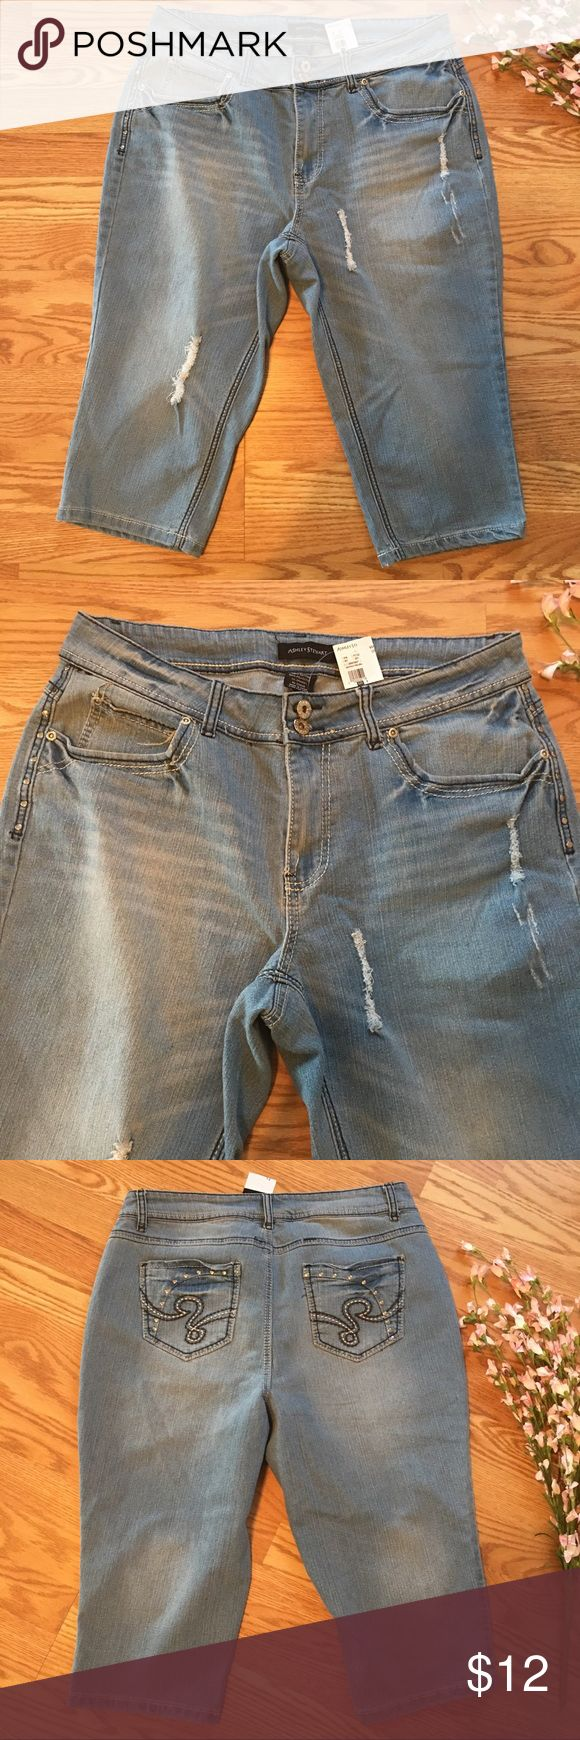 "Ashley Stewart Pedal Pusher Jean Shorts SZ 14 Ashley Stewart Pedal Pusher Jean Shorts, Women's SZ 14 Light Wash Distressed NWT. Stretch. Cotton, Polyester, Spandex.   Measurements taken on a flat surface:  Waist: 36"" Hip: 44"" Rise: 10"" Inseam: 17.5""  Thank you for stopping by!  Vintaj  *FAST SHIPPING* Ashley Stewart Shorts Bermudas"